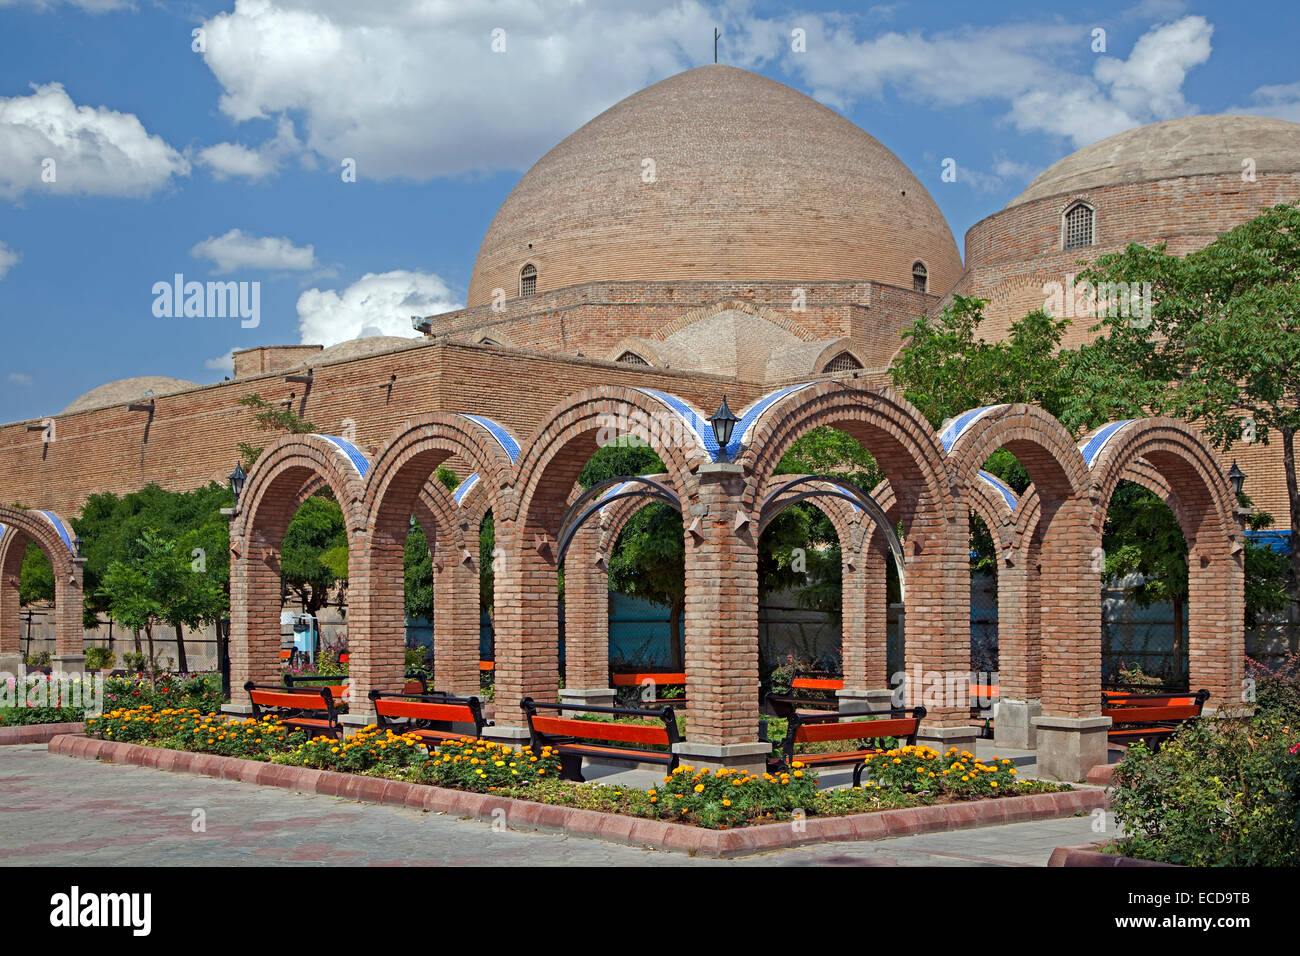 Blue Mosque in the city Tabriz, East Azerbaijan, Iran - Stock Image